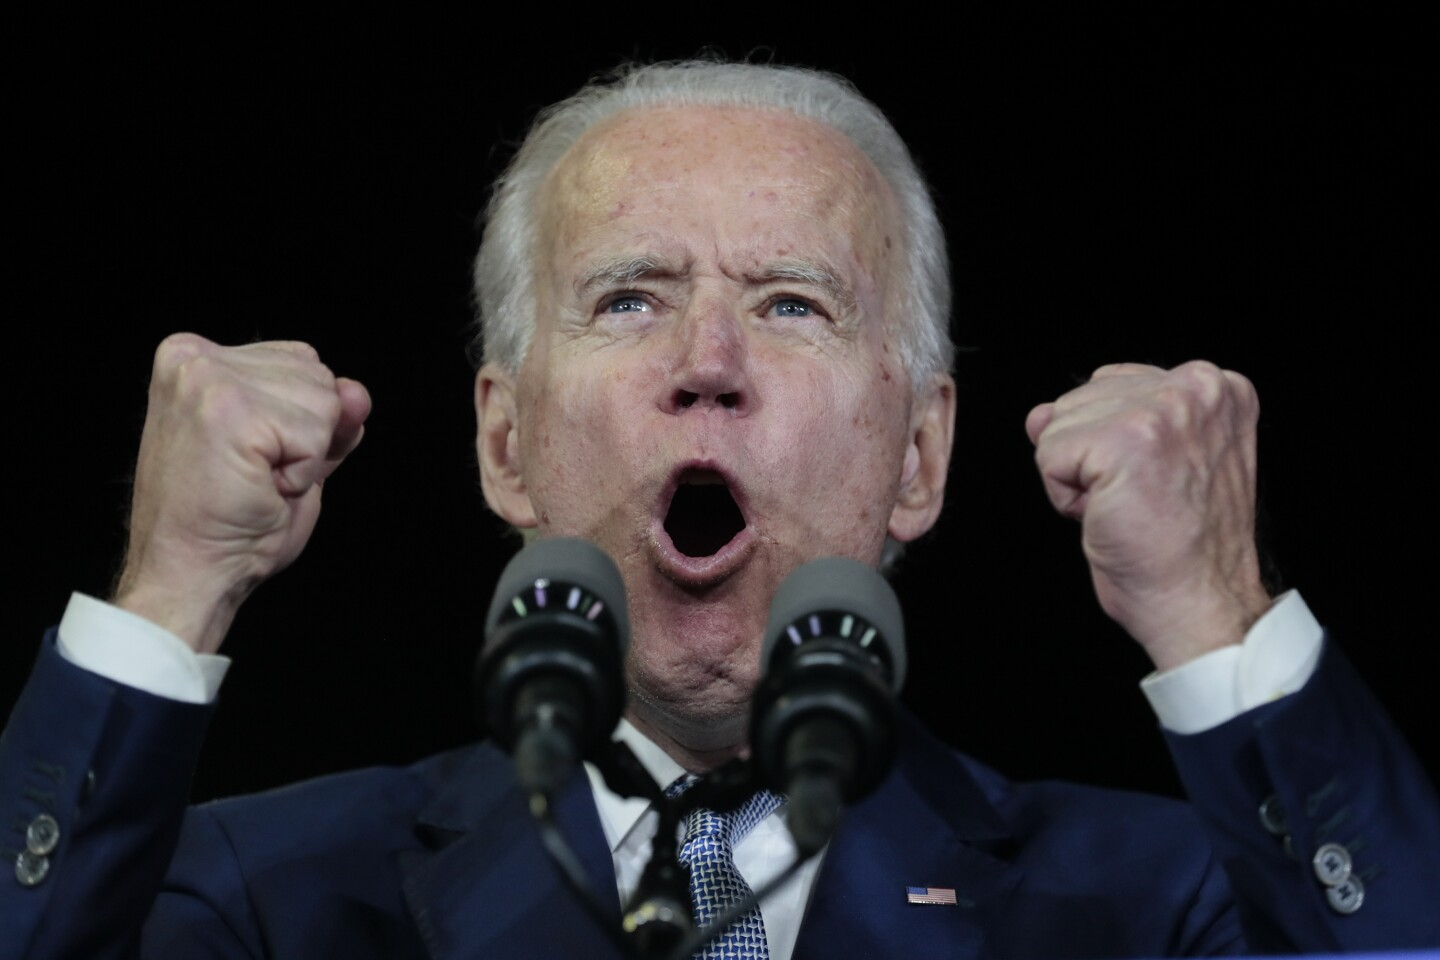 LOS ANGELES, CA, TUESDAY, MARCH 3, 2020 - Democratic Presidential hopeful, Joe Biden reacts to Super Tuesday voting results at the Baldwin Hills Recreation Center. (Robert Gauthier/Los Angeles Times)